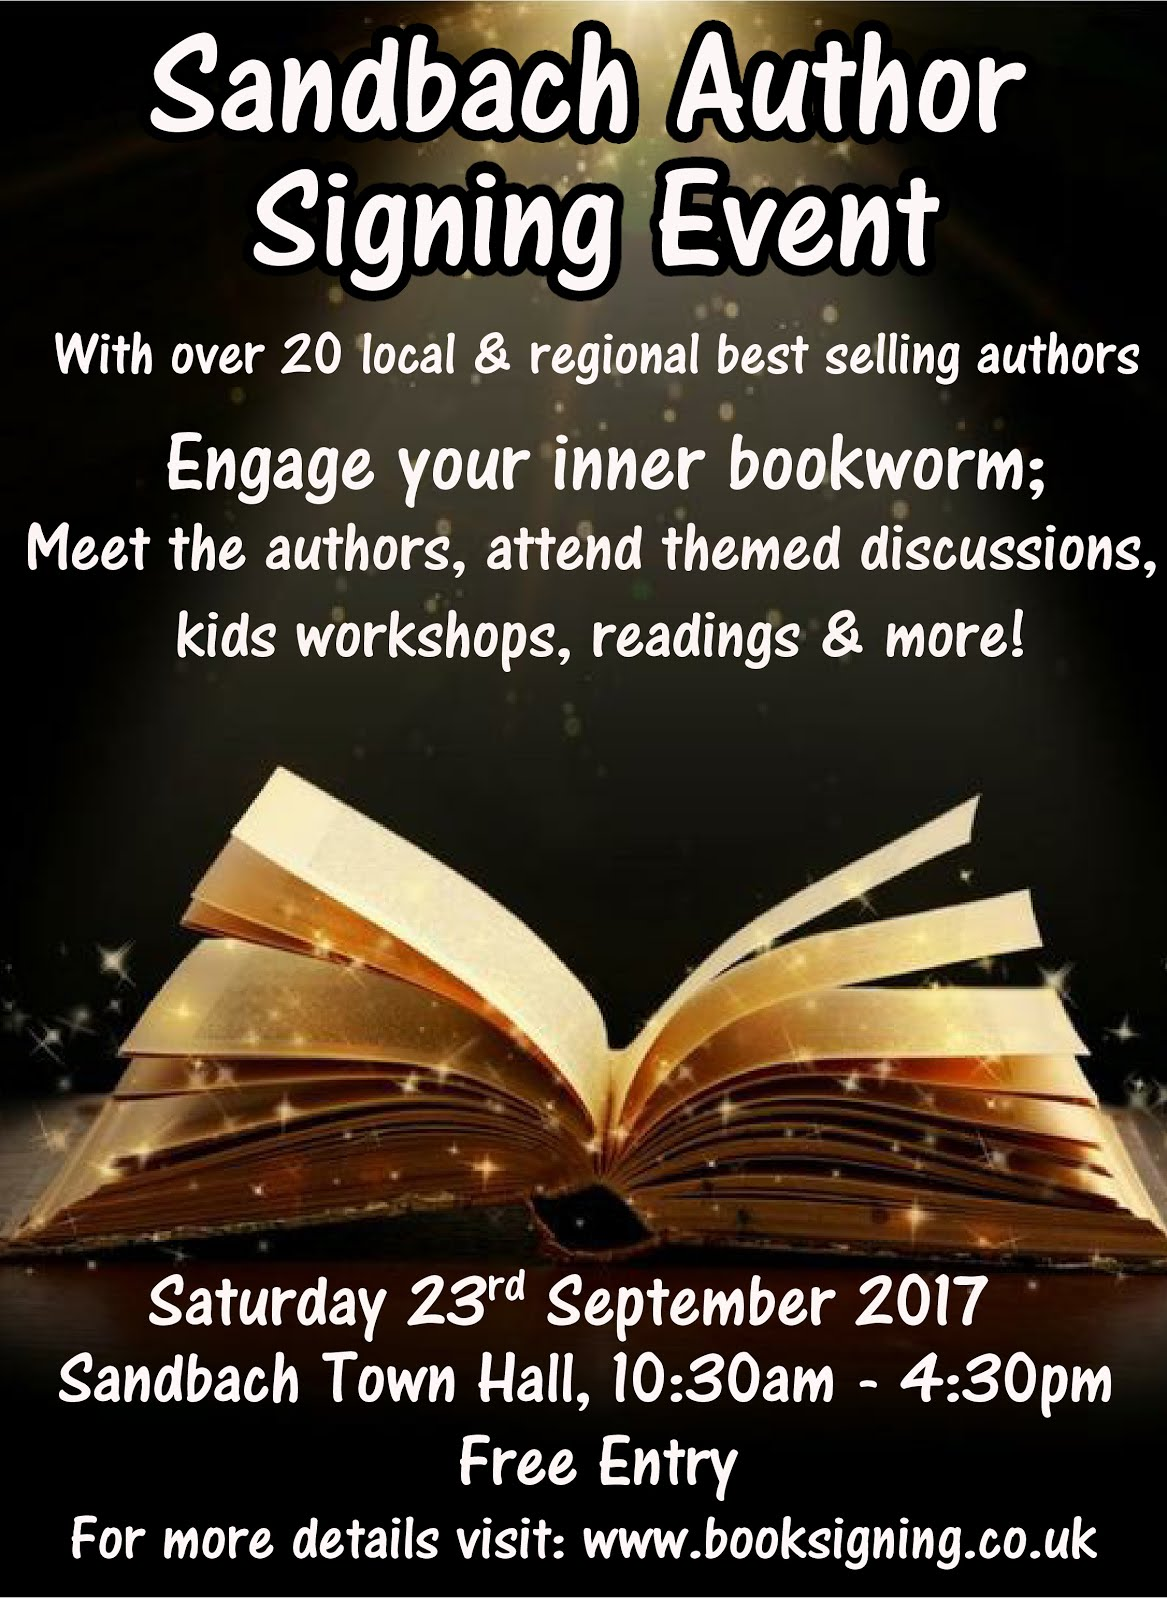 Sandbach Author Signing Event